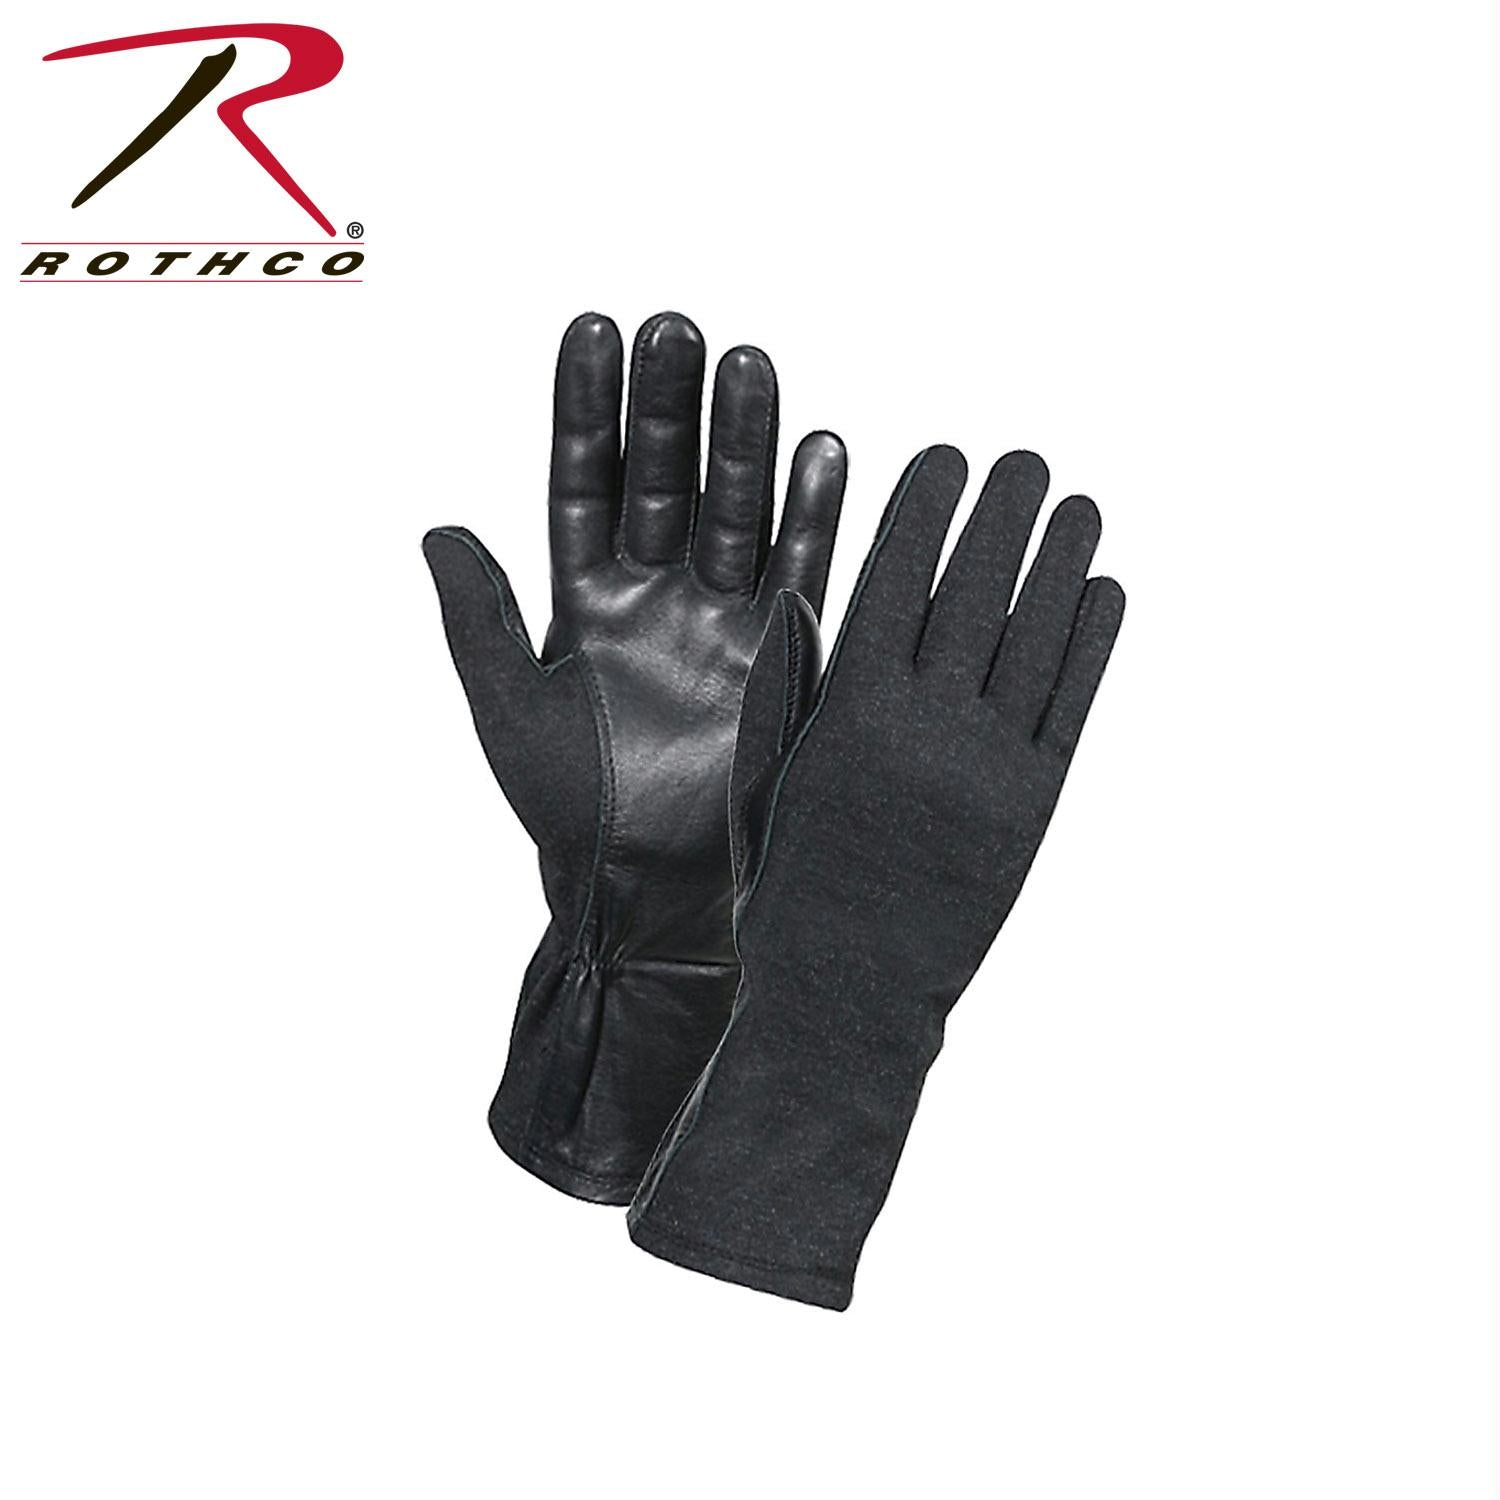 Rothco G.I. Type Flame & Heat Resistant Flight Gloves - Black / 9